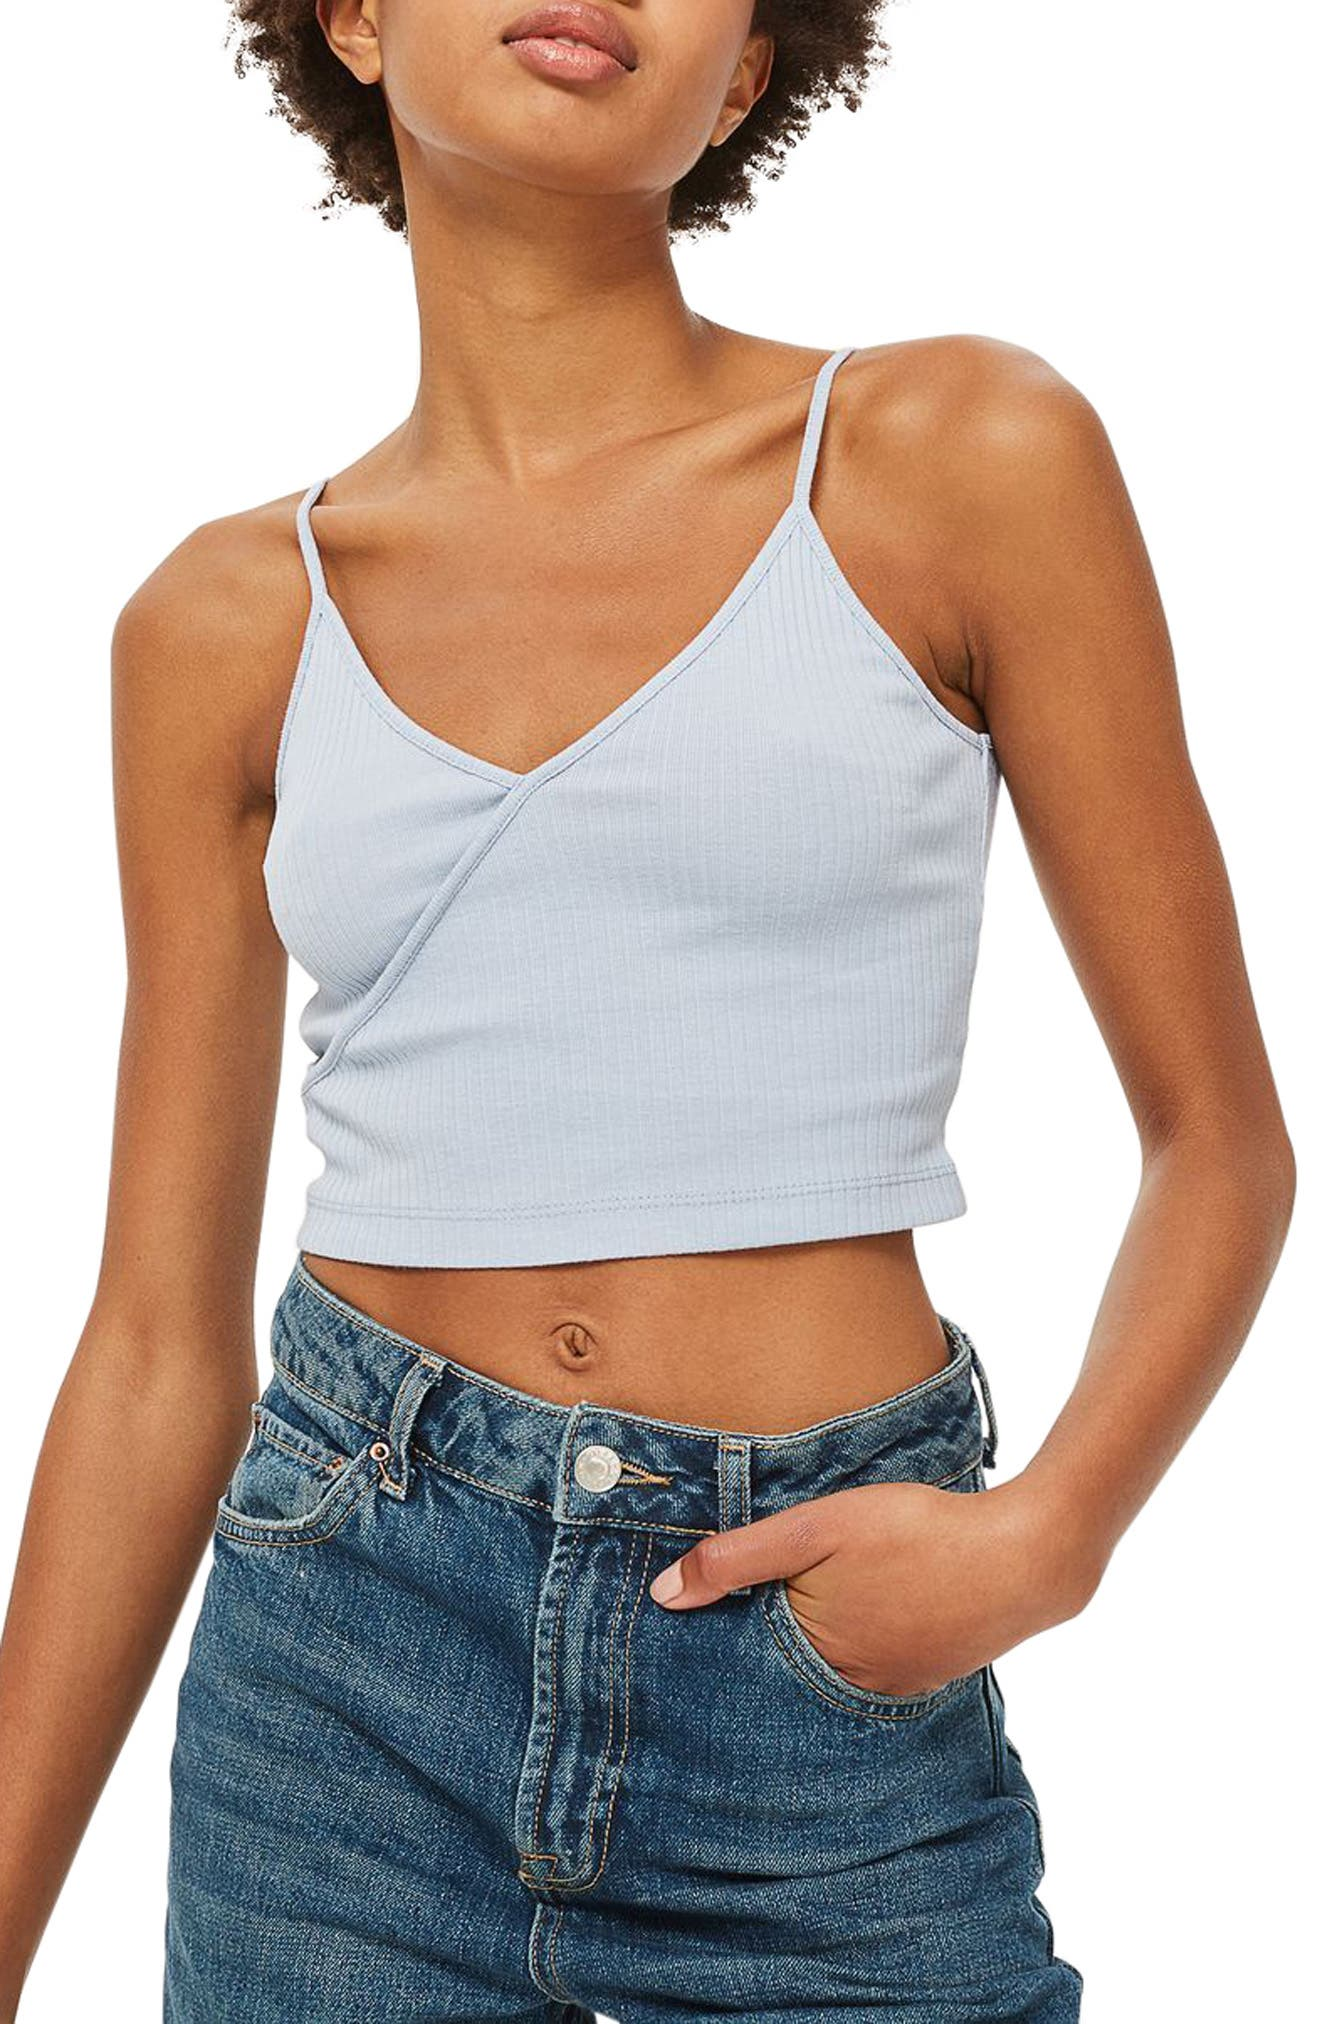 Topshop Kaia Crop Top (Regular & Petite)